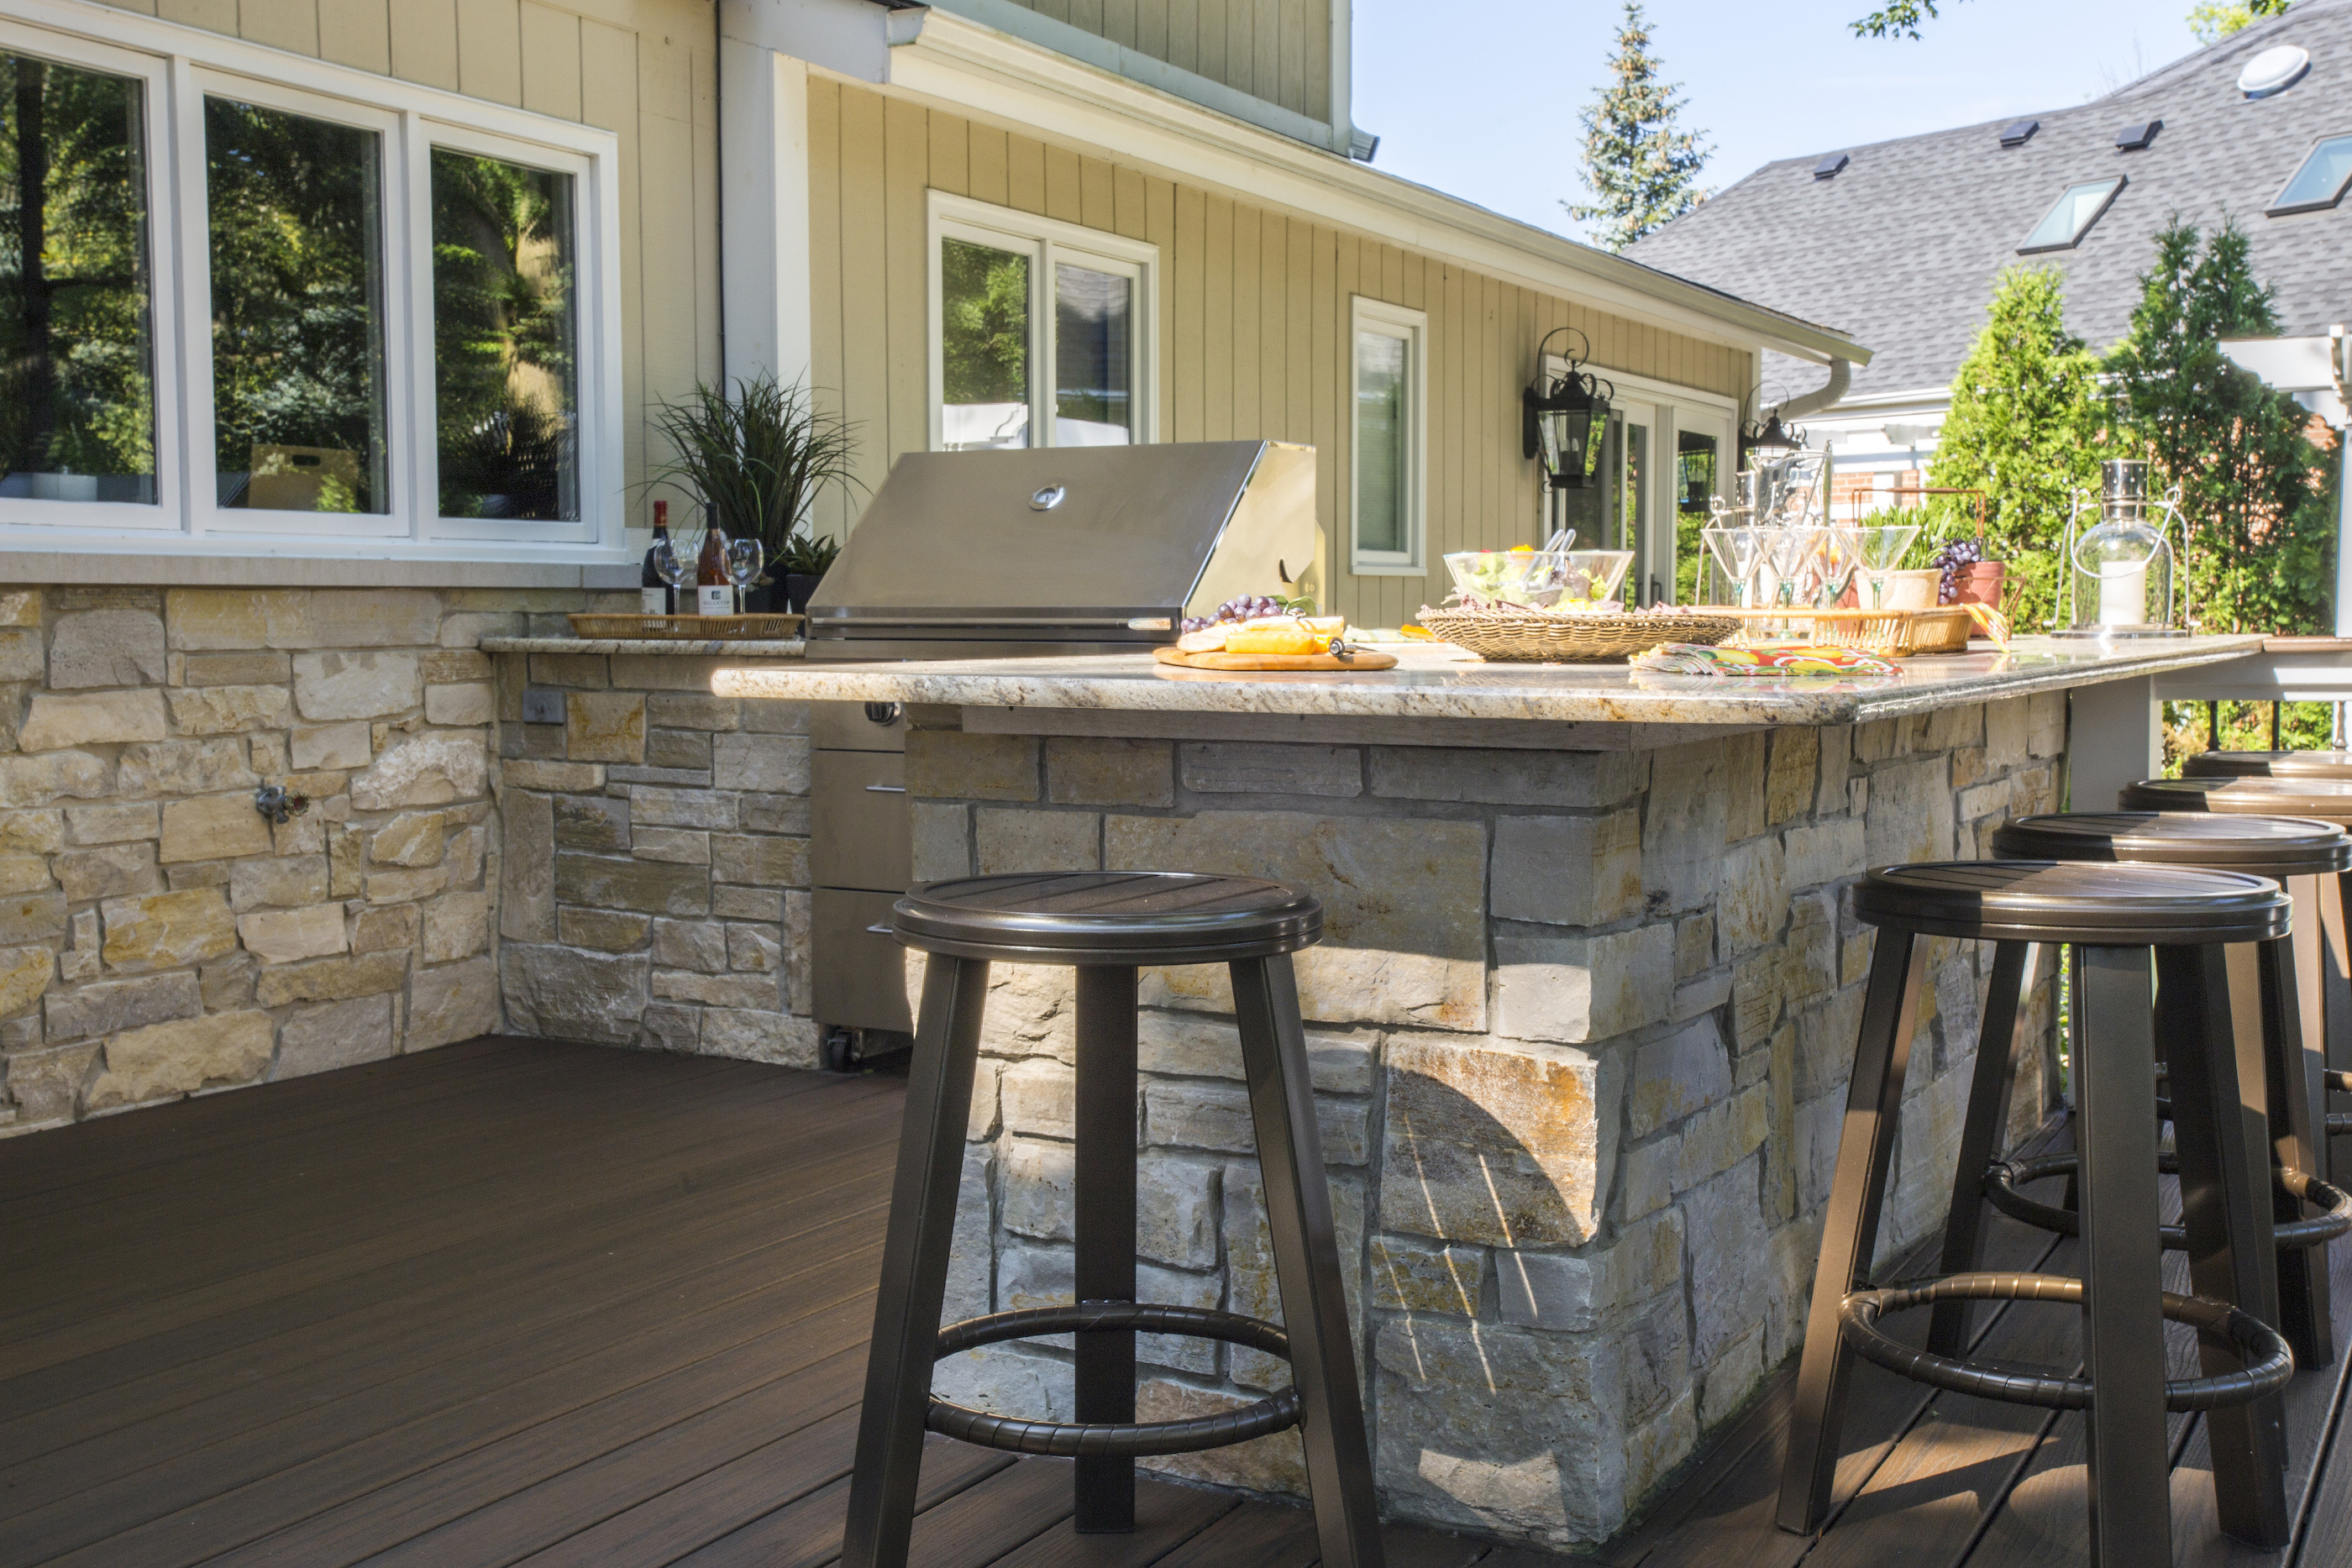 Blue Stone Countertop Outdoor Kitchens Hirsch Brick And Stone